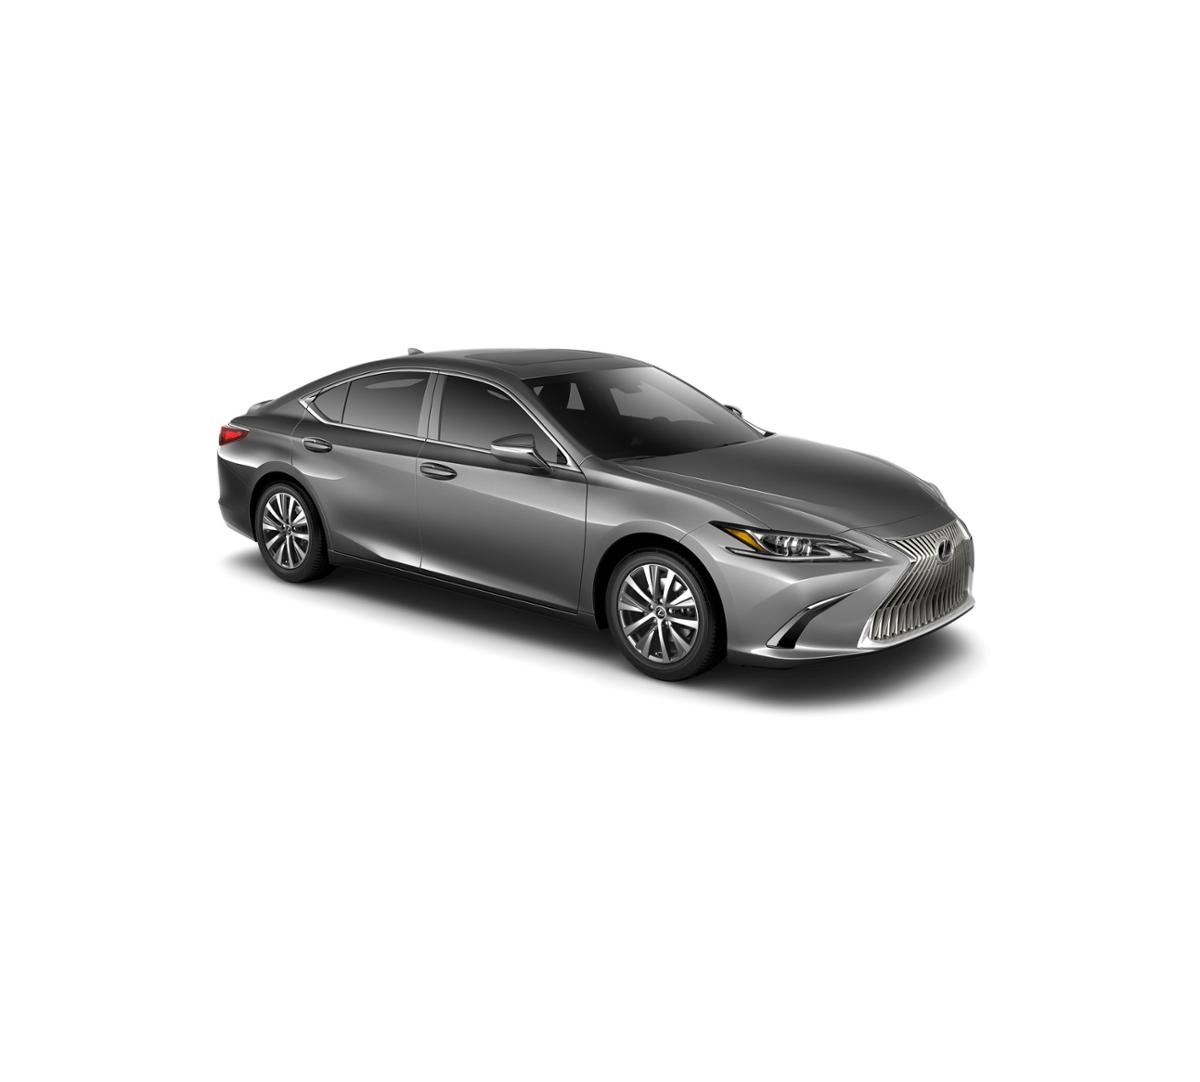 Lexus Es 350 For Sale: New 2019 Nebula Gray Pearl Lexus ES 350 For Sale In White